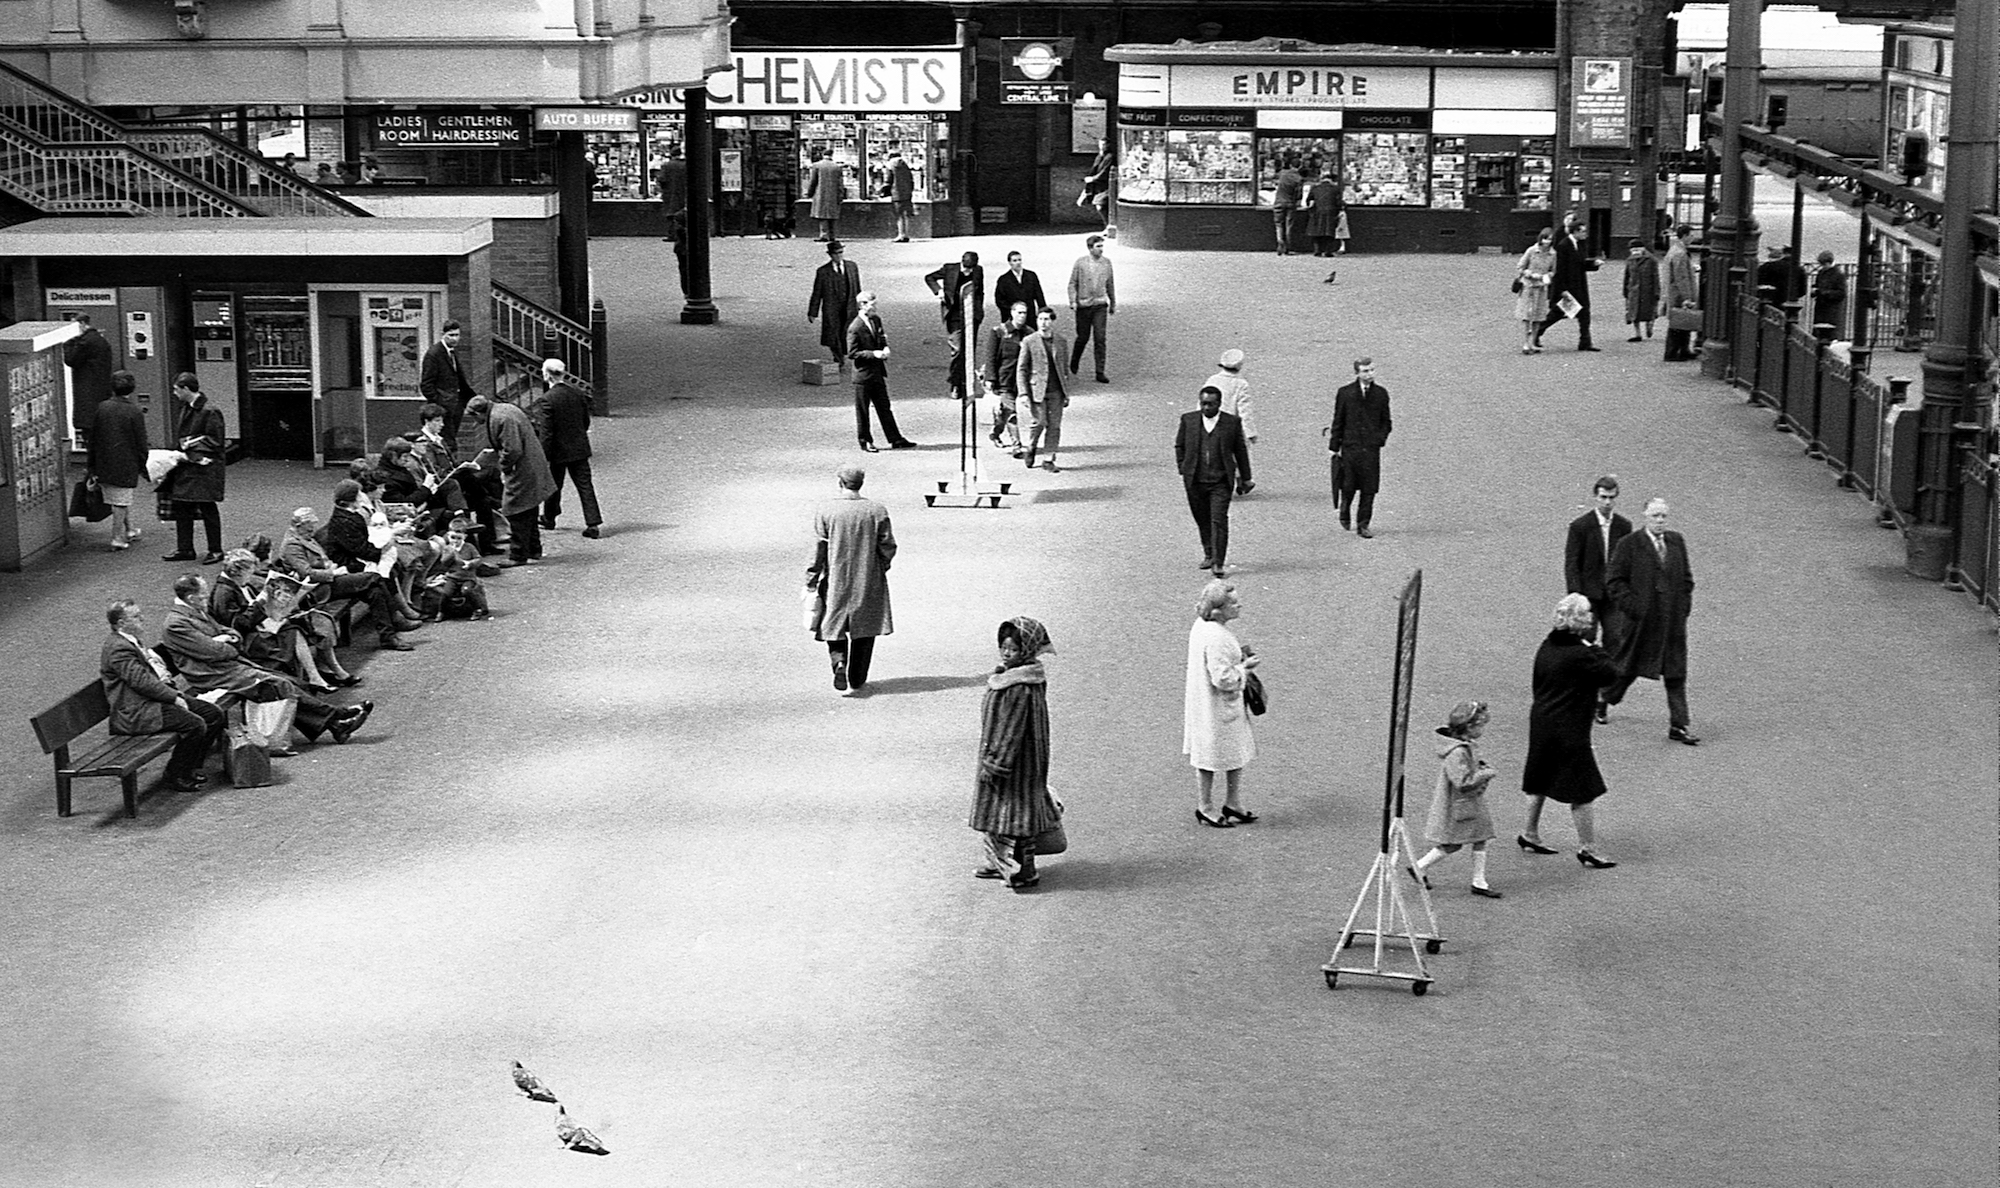 Liverpool Street Station, London 1967